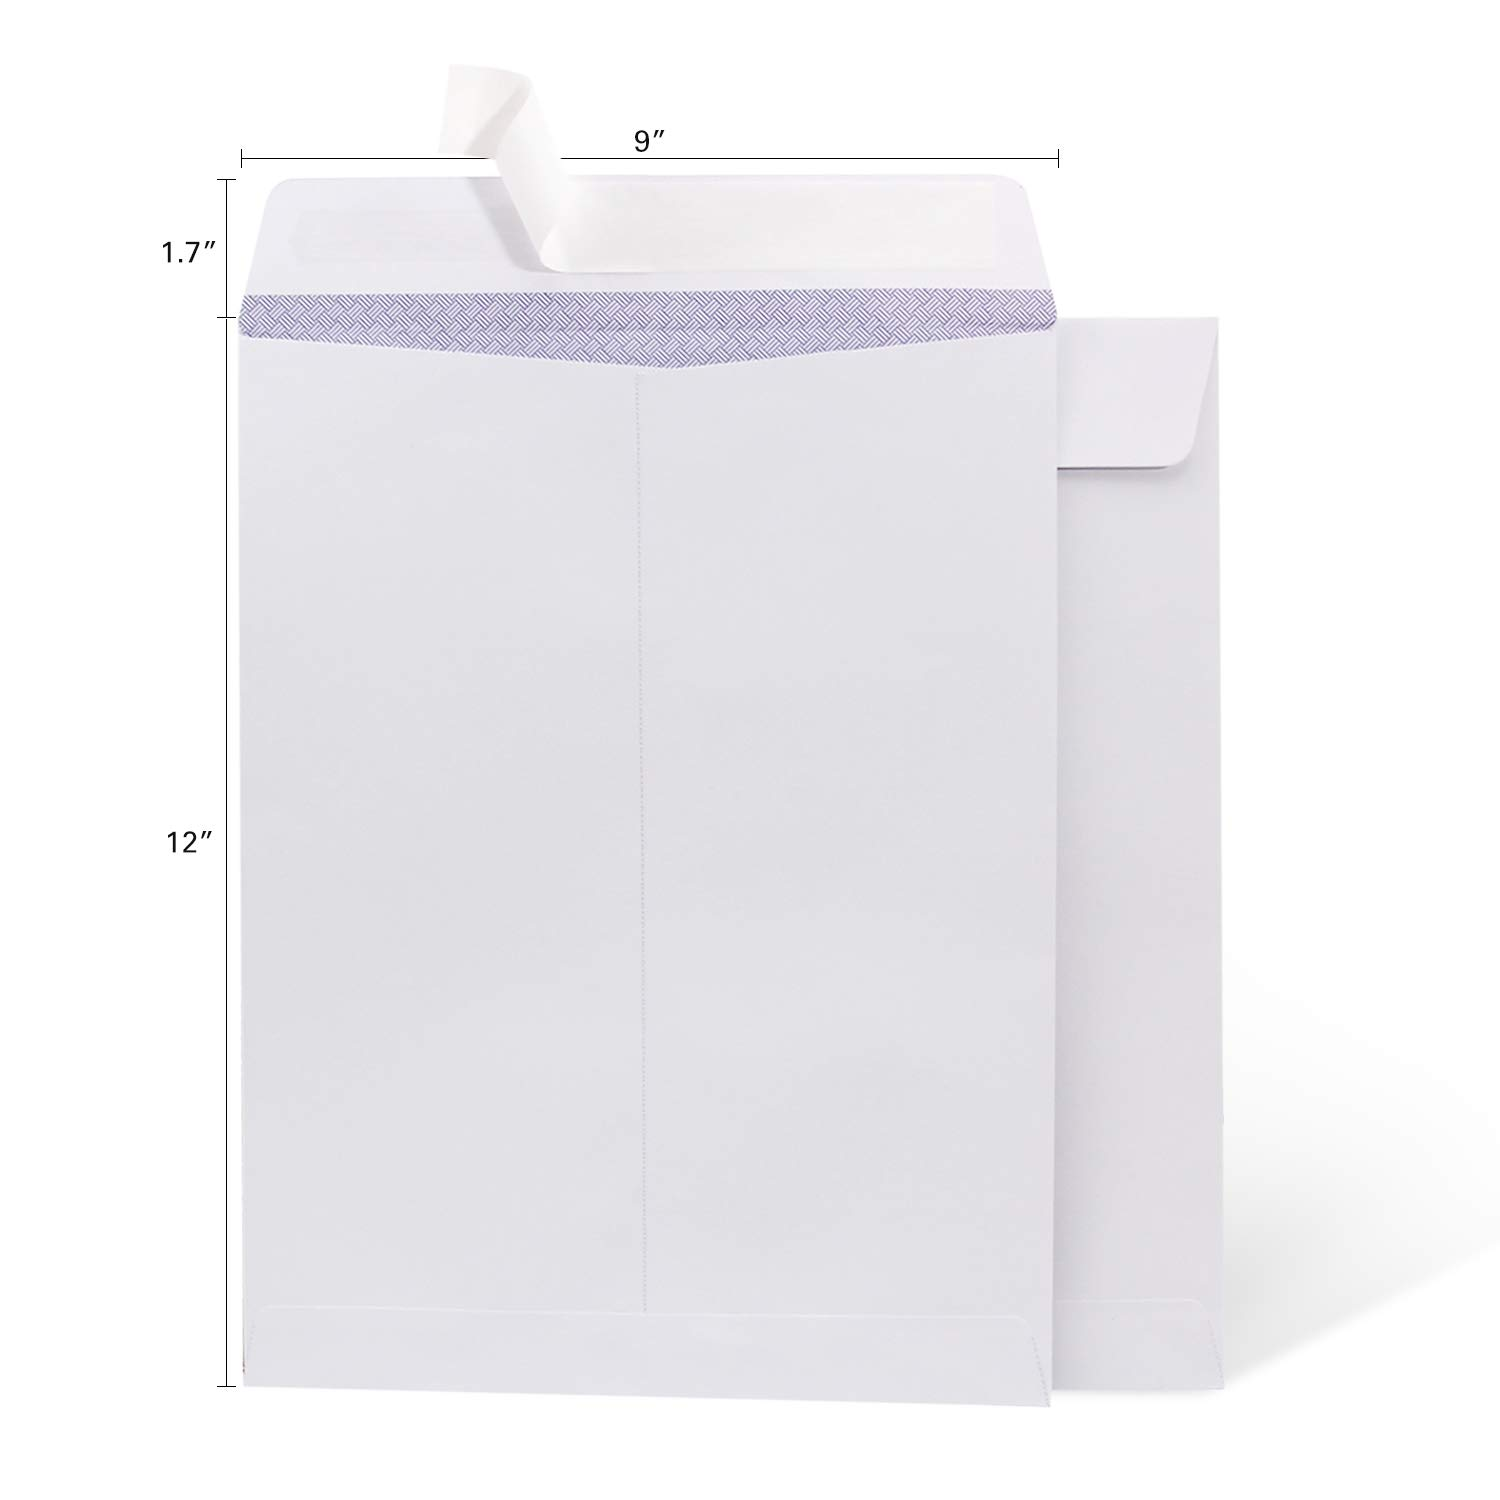 100 9 x 12 Self Seal Security White Catalog Envelopes Ohuhu, for Business Documents, Secure Mailing, Photos, Ultra Strong Quick-Seal, 100 Envelope with Letter Opener, 28 lb by Ohuhu (Image #5)